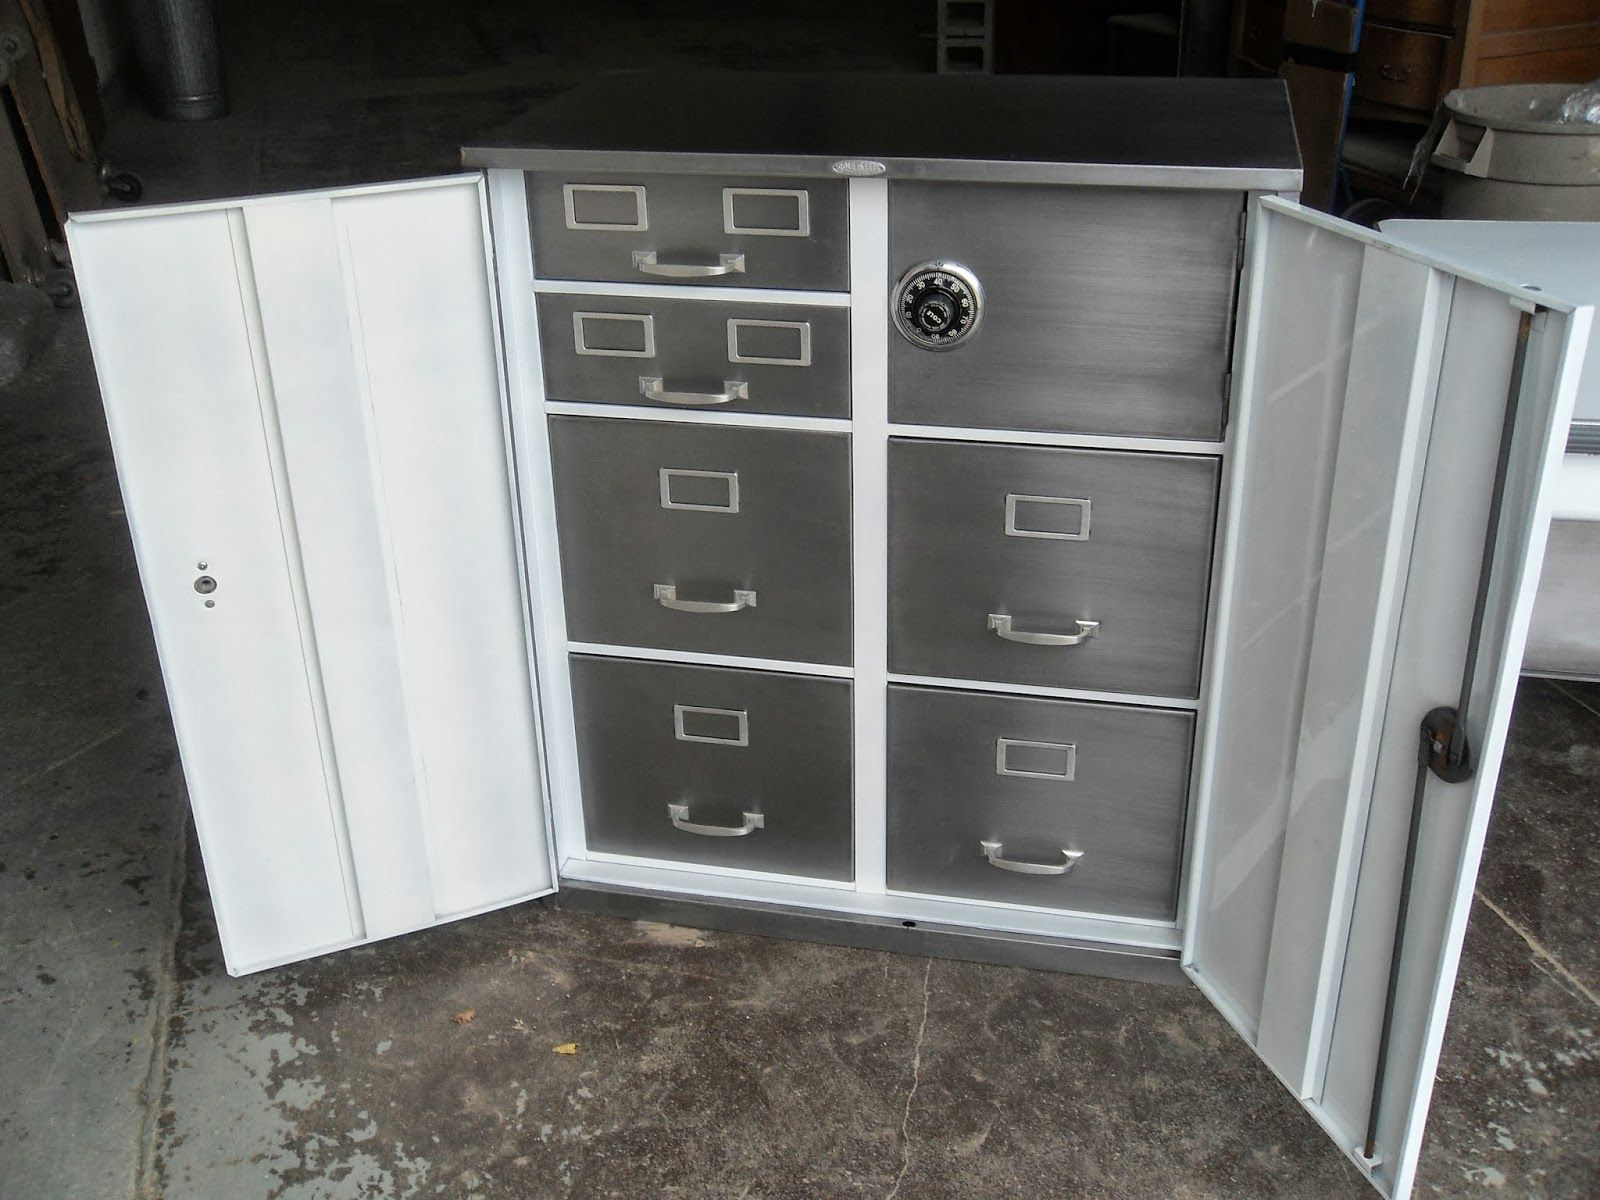 Refinished Vintage Steel Large Old Tanker Desks From The 50 S And 60 S Chairs Cabinets Lamps Trash Cans Downtown Tor Filing Cabinet Cabinet Cabinet Safes